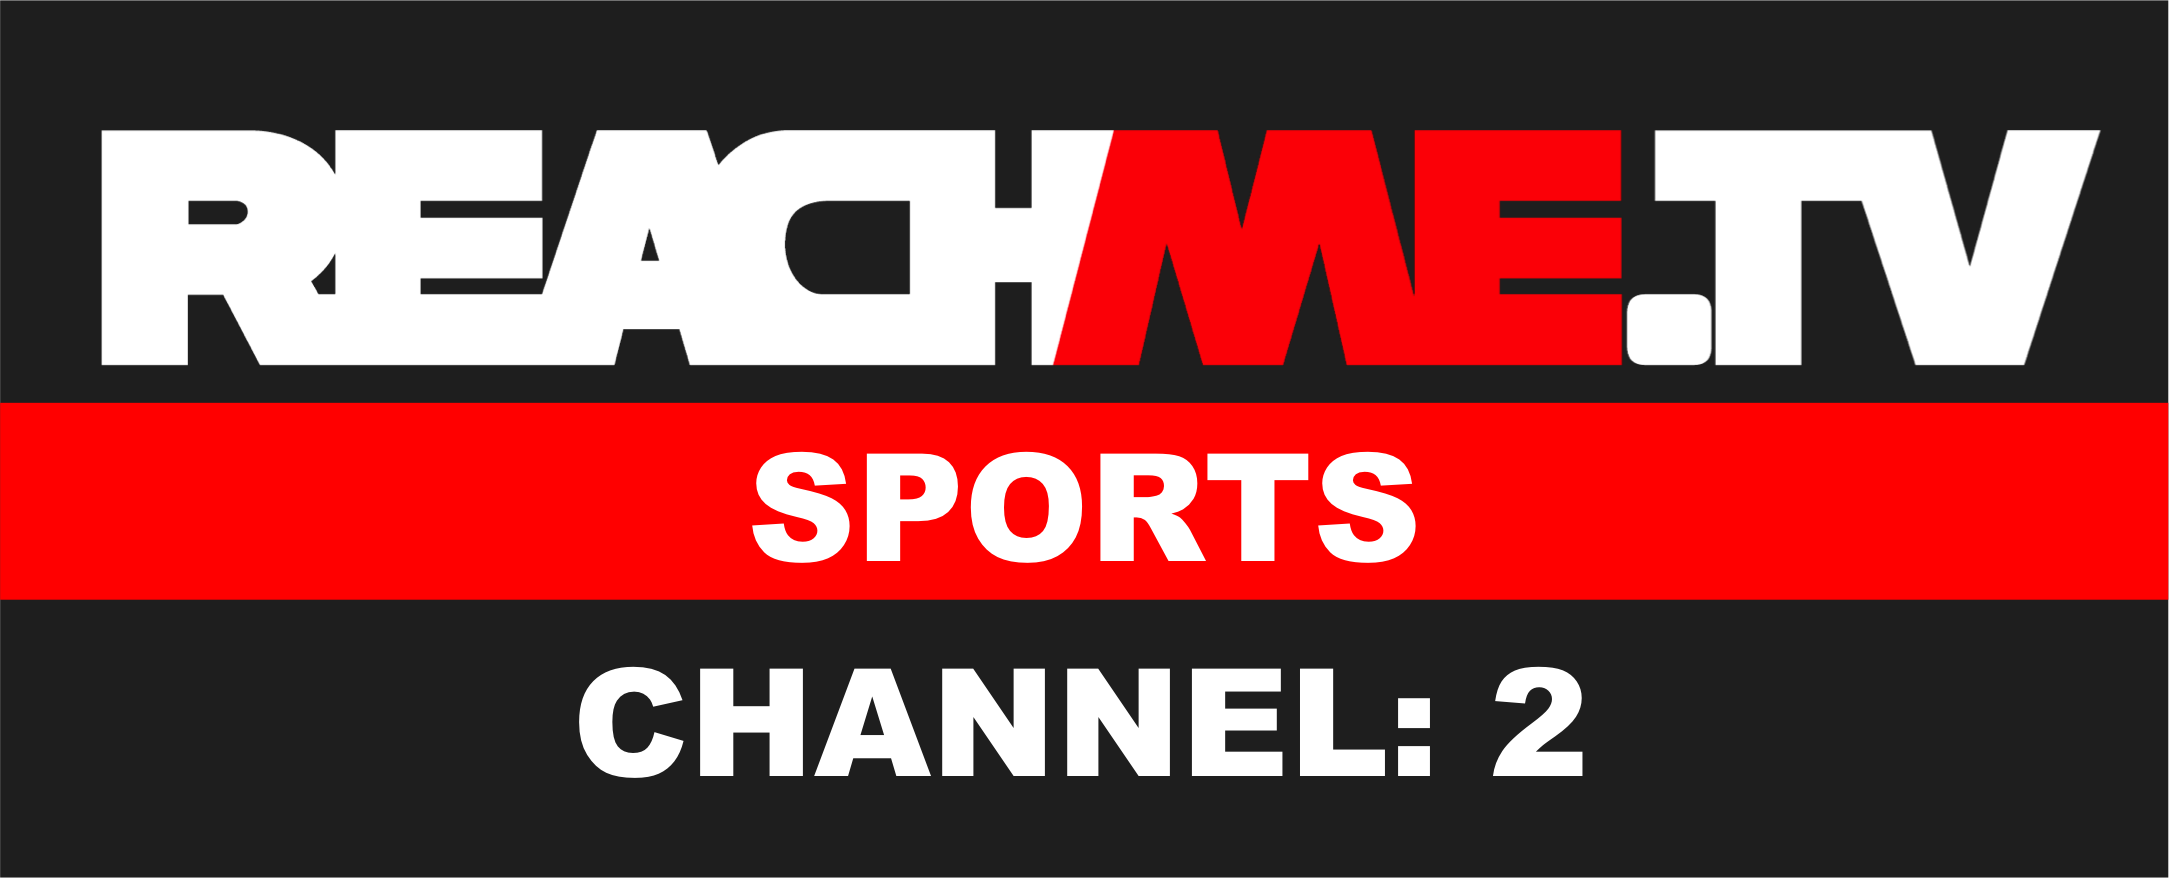 CH 2: REACHME SPORTS